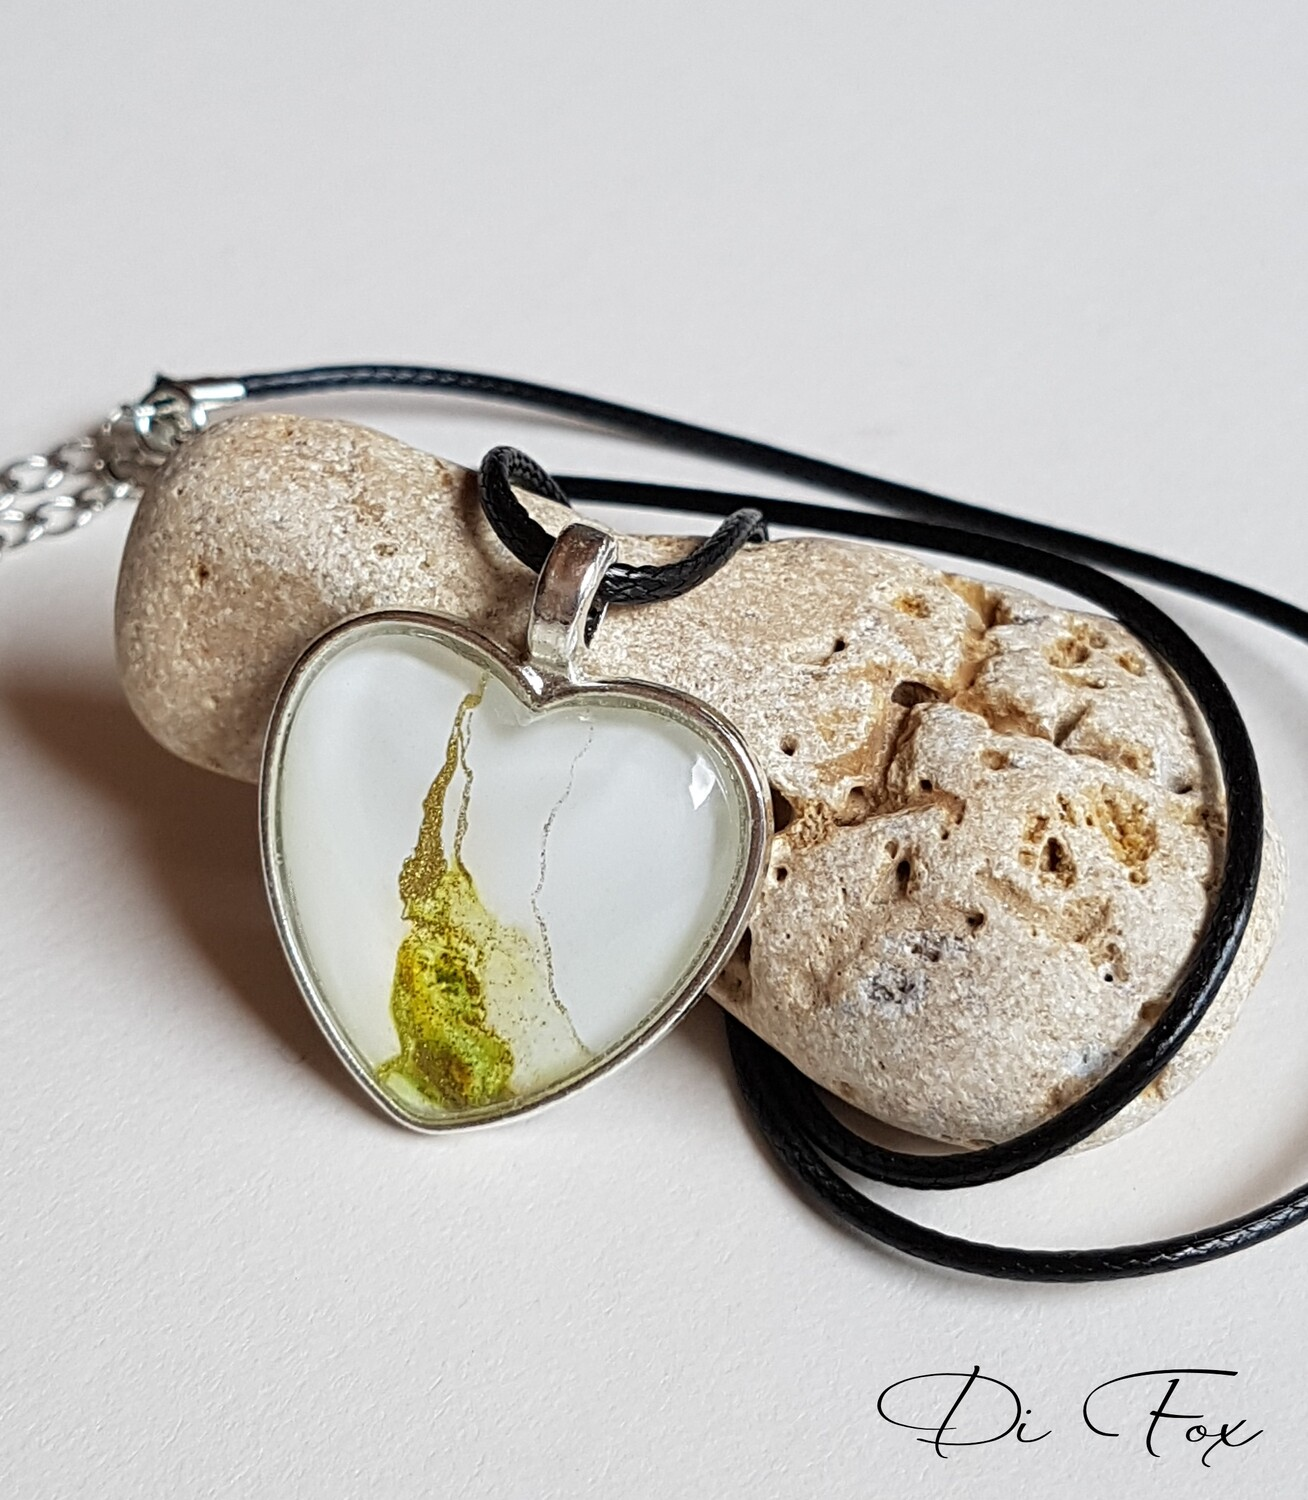 Olive Green and White Heart shape pendant necklace